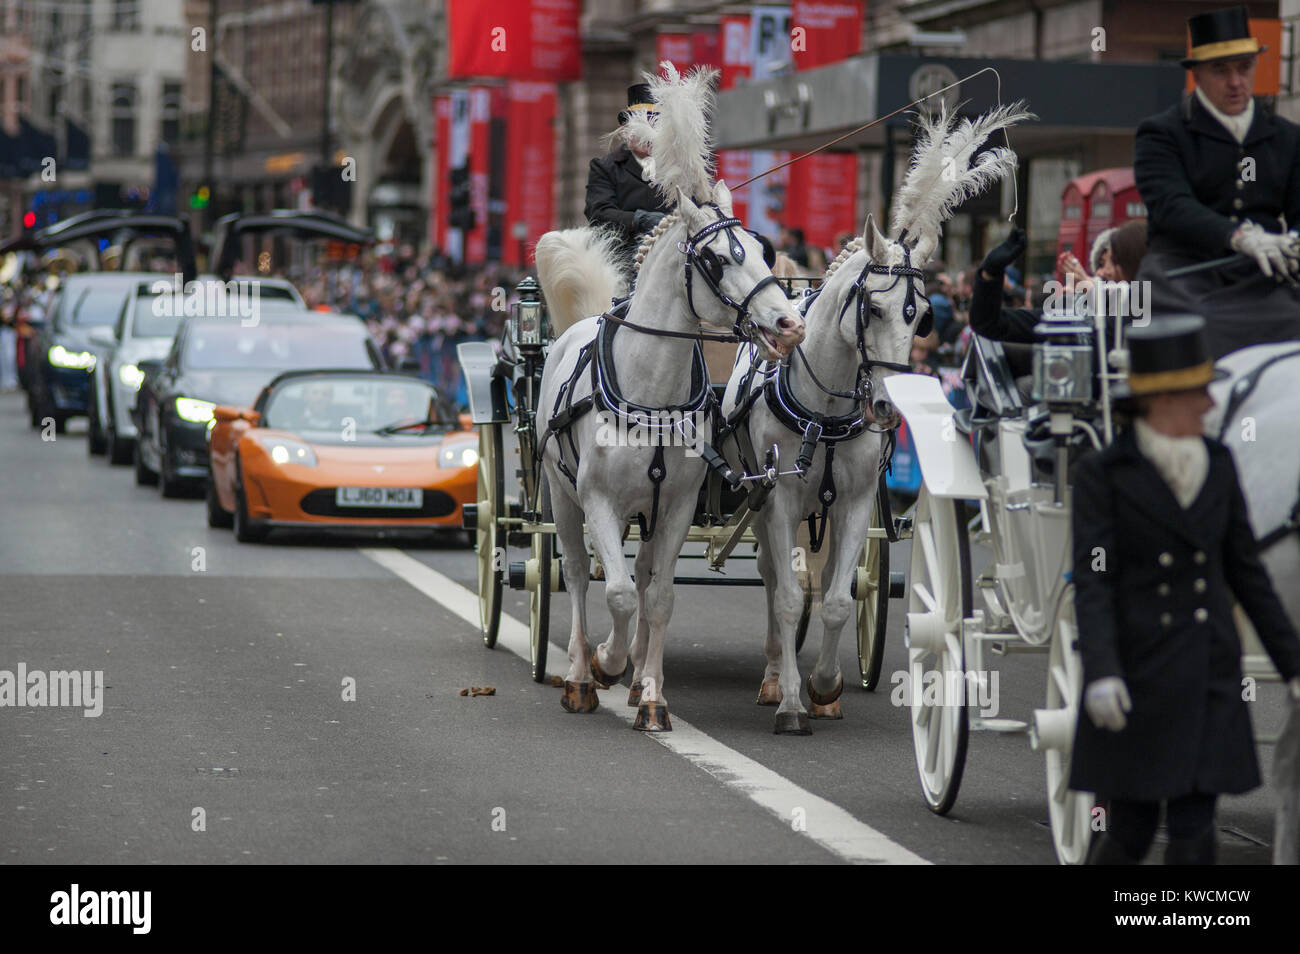 New Tesla Stock Photos Images Alamy Wire Harness Mayor Of Westminsters Coach And Cars In Piccadilly On 1 January 2018 At The London